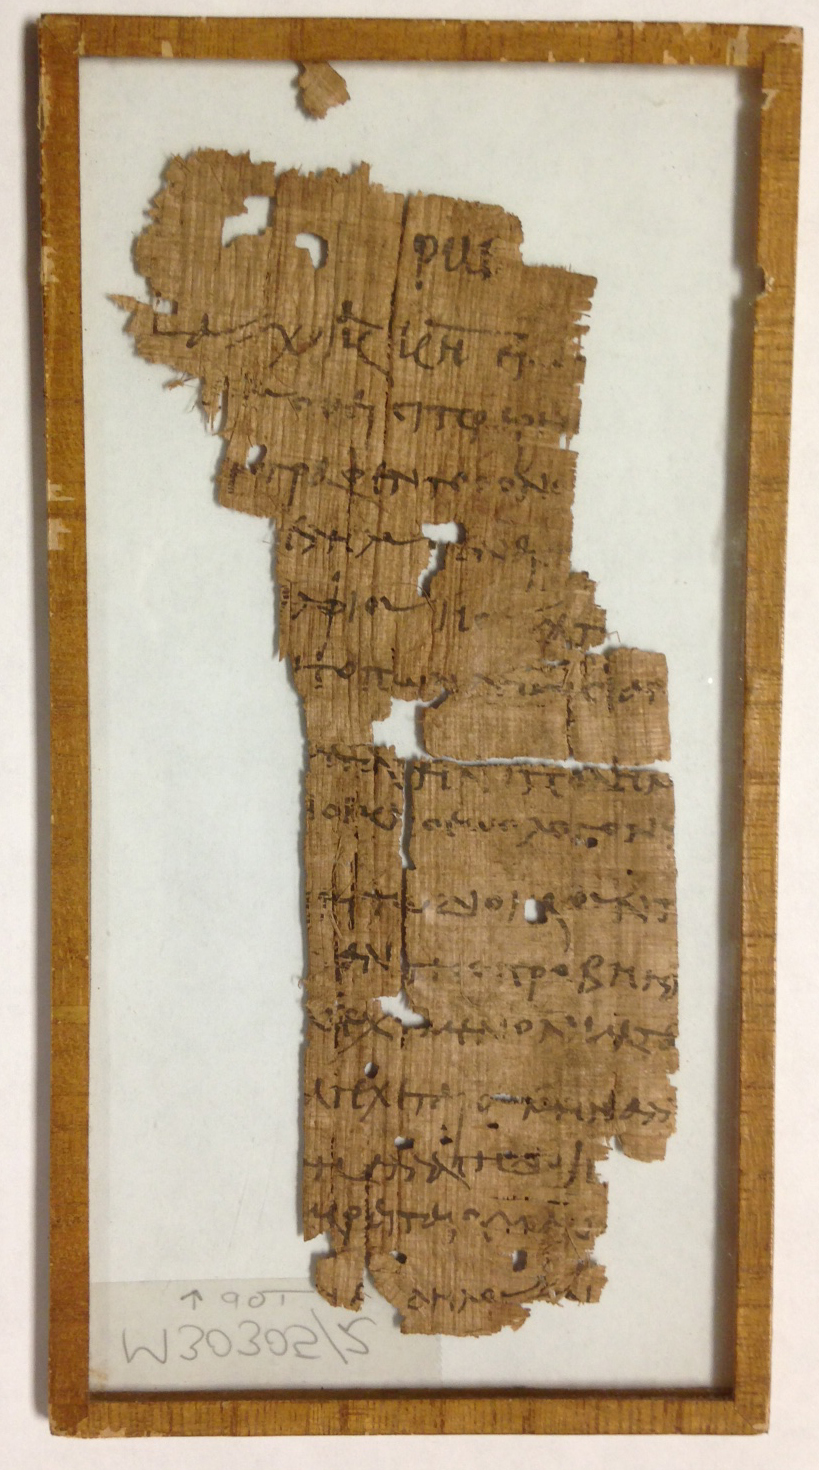 P. Virginia 1, U.Va.'s first papyrus document, measures 16.5 x 8 cm. It was written in Greek, probably in Egypt during the 3rd century CE. Purchased on the Associates Endowment Fund.